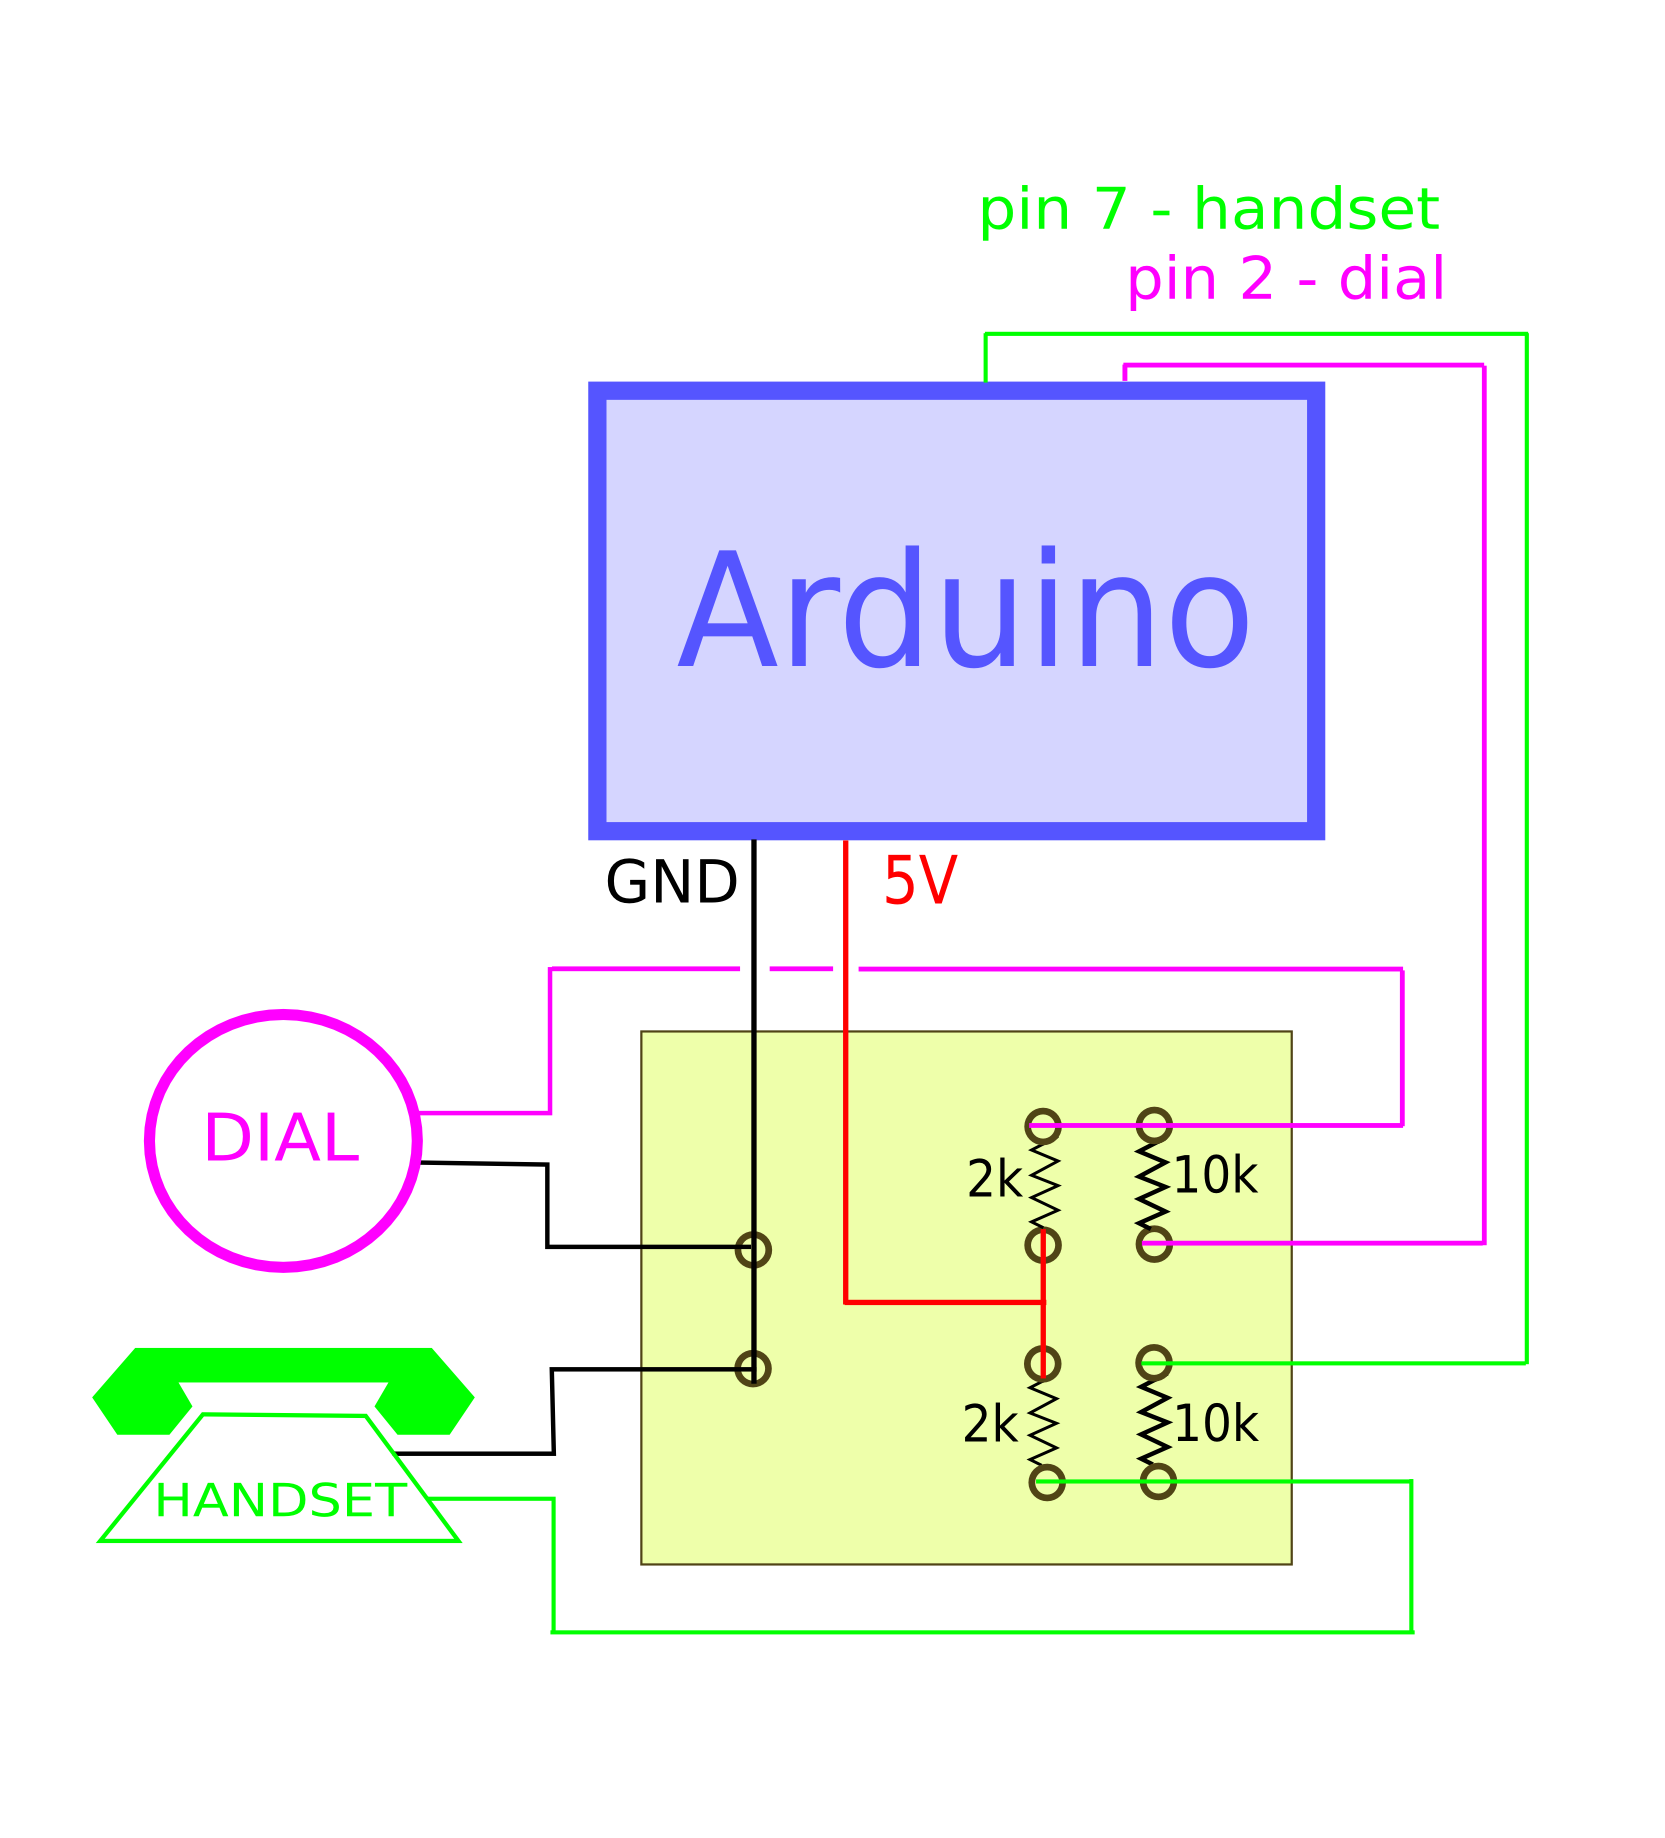 Rotary Dial Phone To Arduino Open Lab Egypt Line Wire Diagram The Idea Behind This Circuit Is Connect Input Wires Lets Say Of Handset 5 Volts Pin If Two Are Not Touching Current Flows